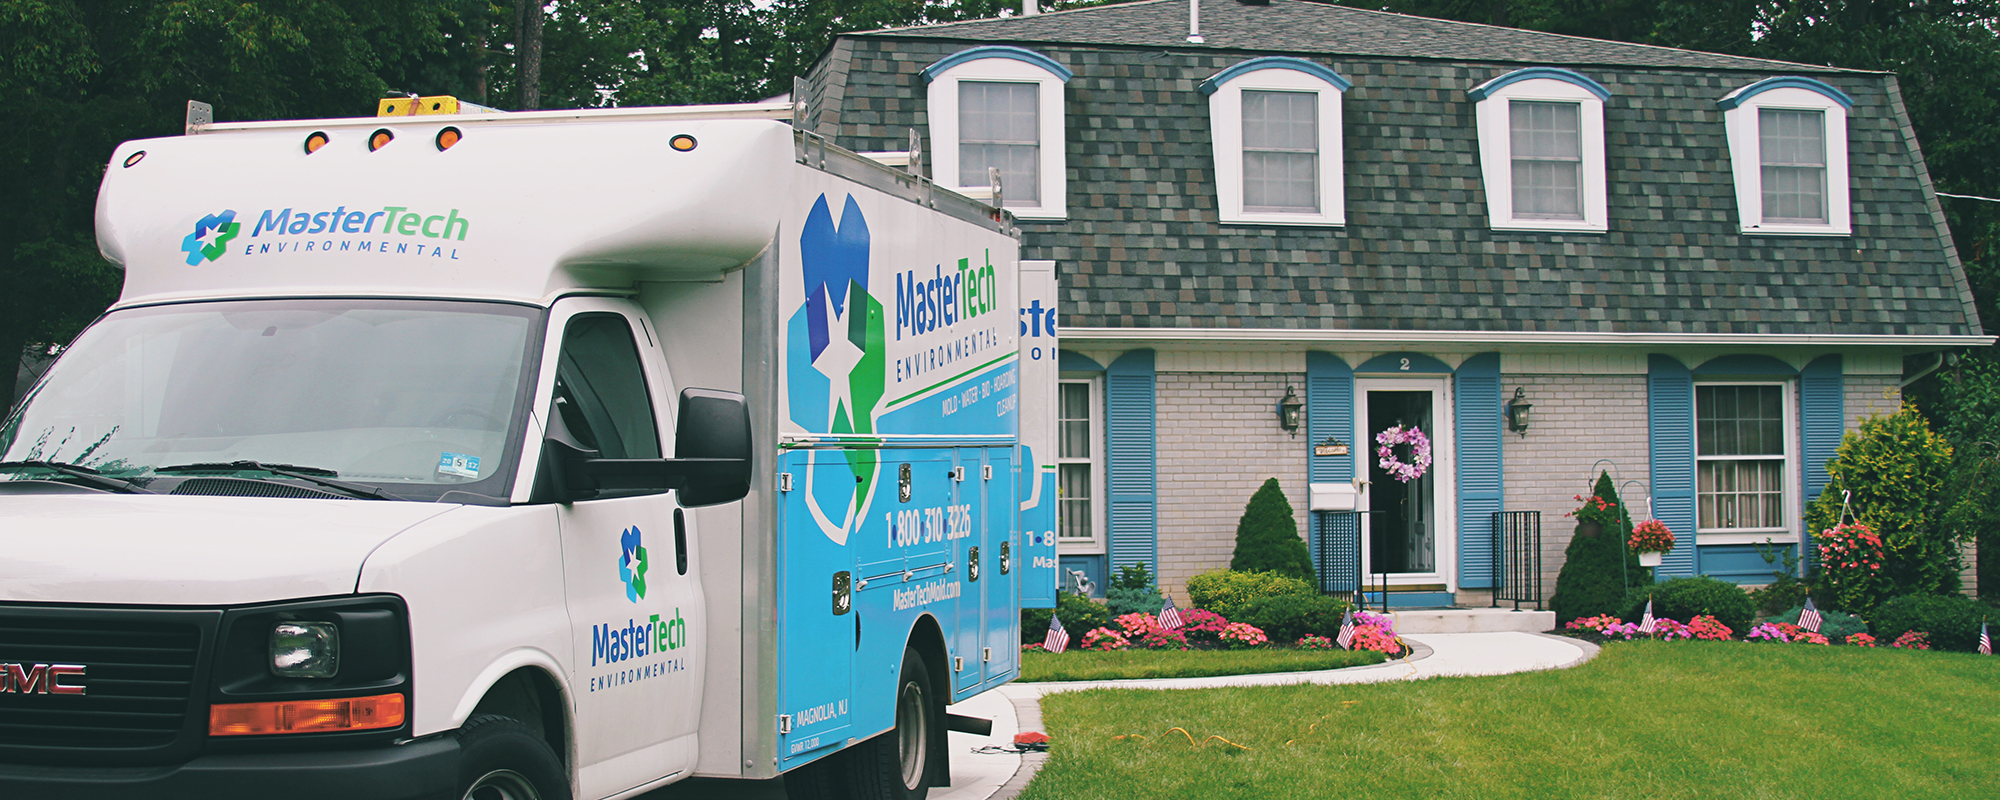 mold-removal-springfield-township-nj-08041